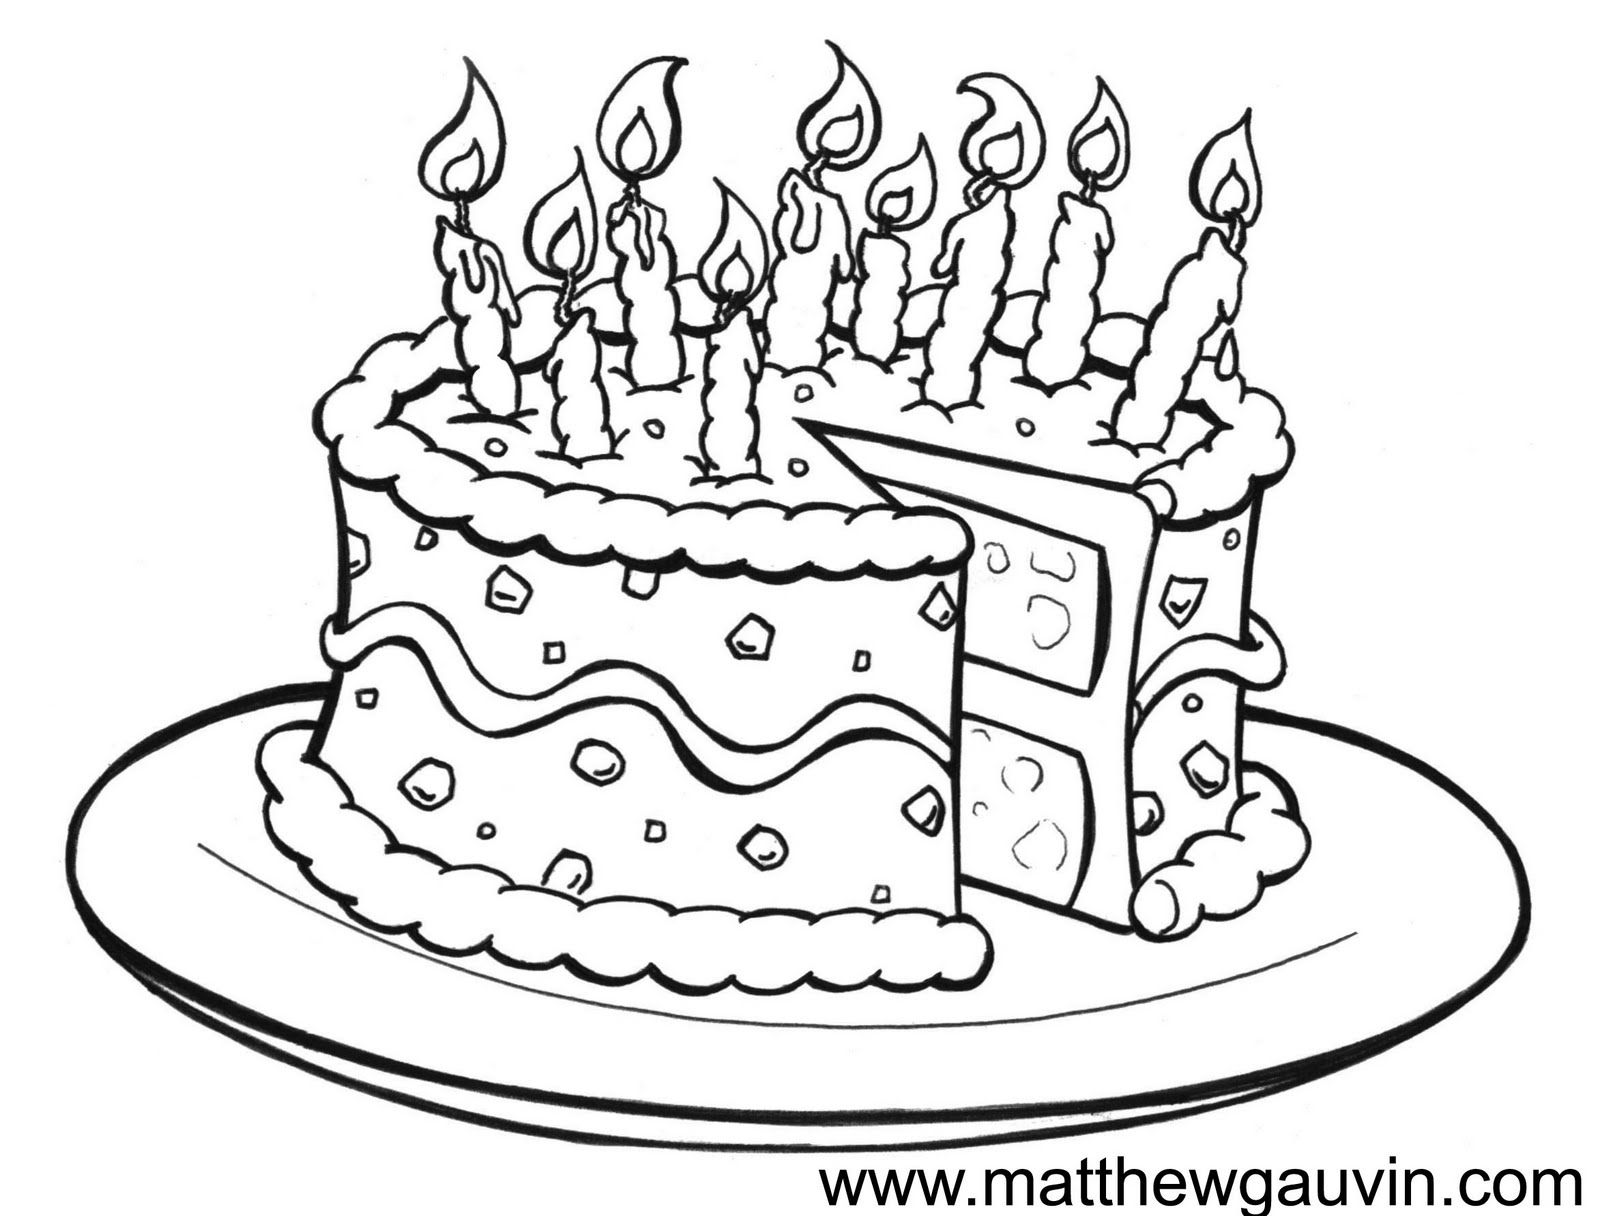 Drawing Cake Colour Birthday Drawings Mg Children 39s Book Illustrations